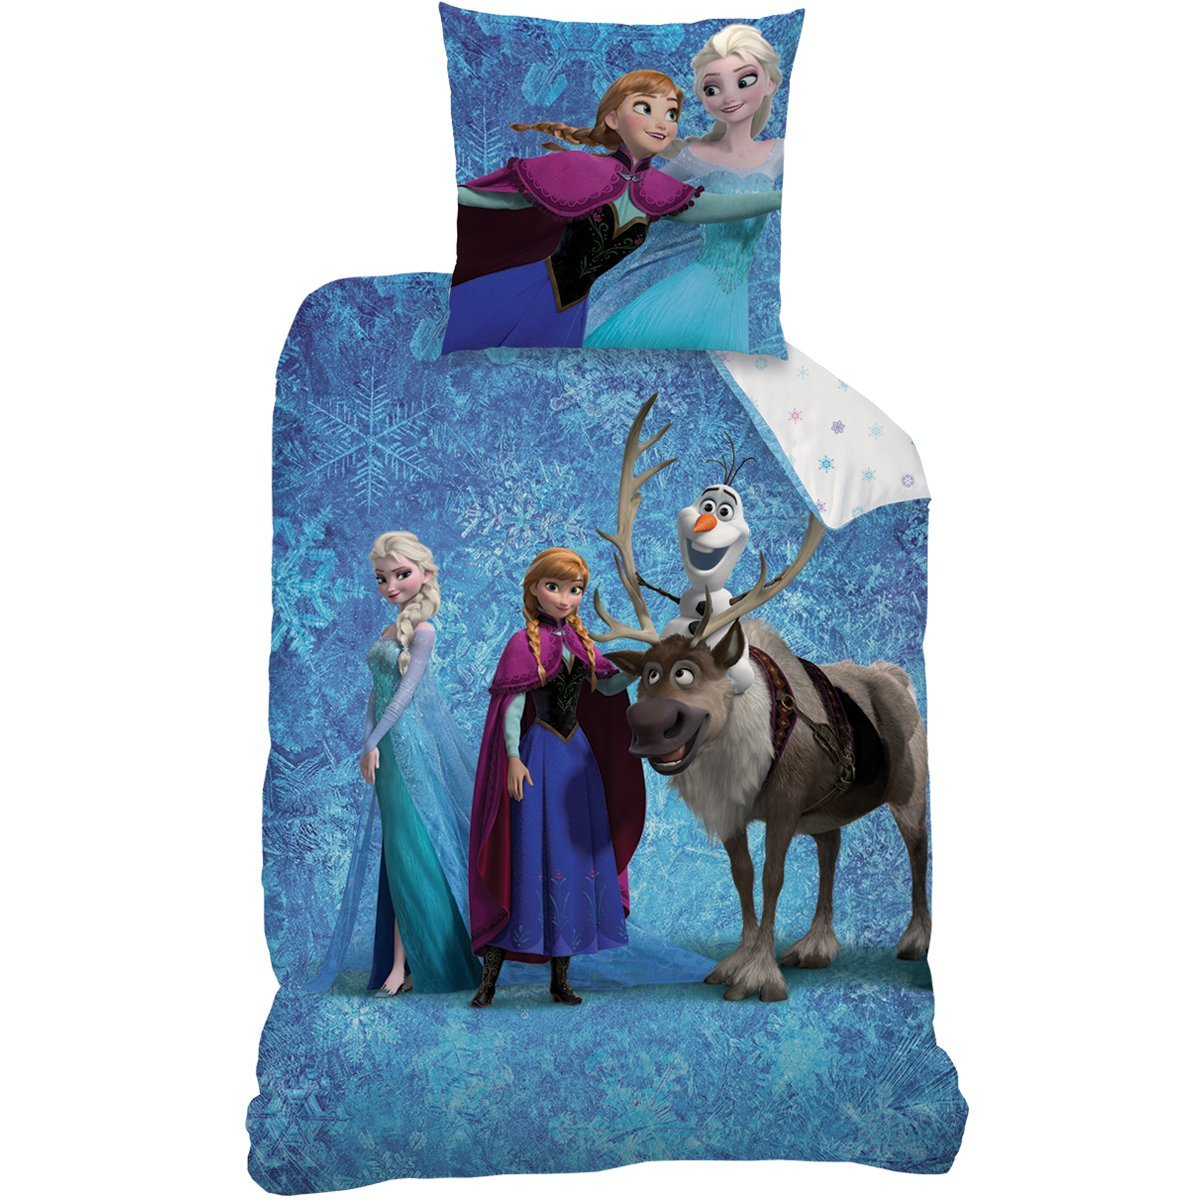 reine des neiges parure de lit housse de couette frozen team frozen reine des neiges. Black Bedroom Furniture Sets. Home Design Ideas